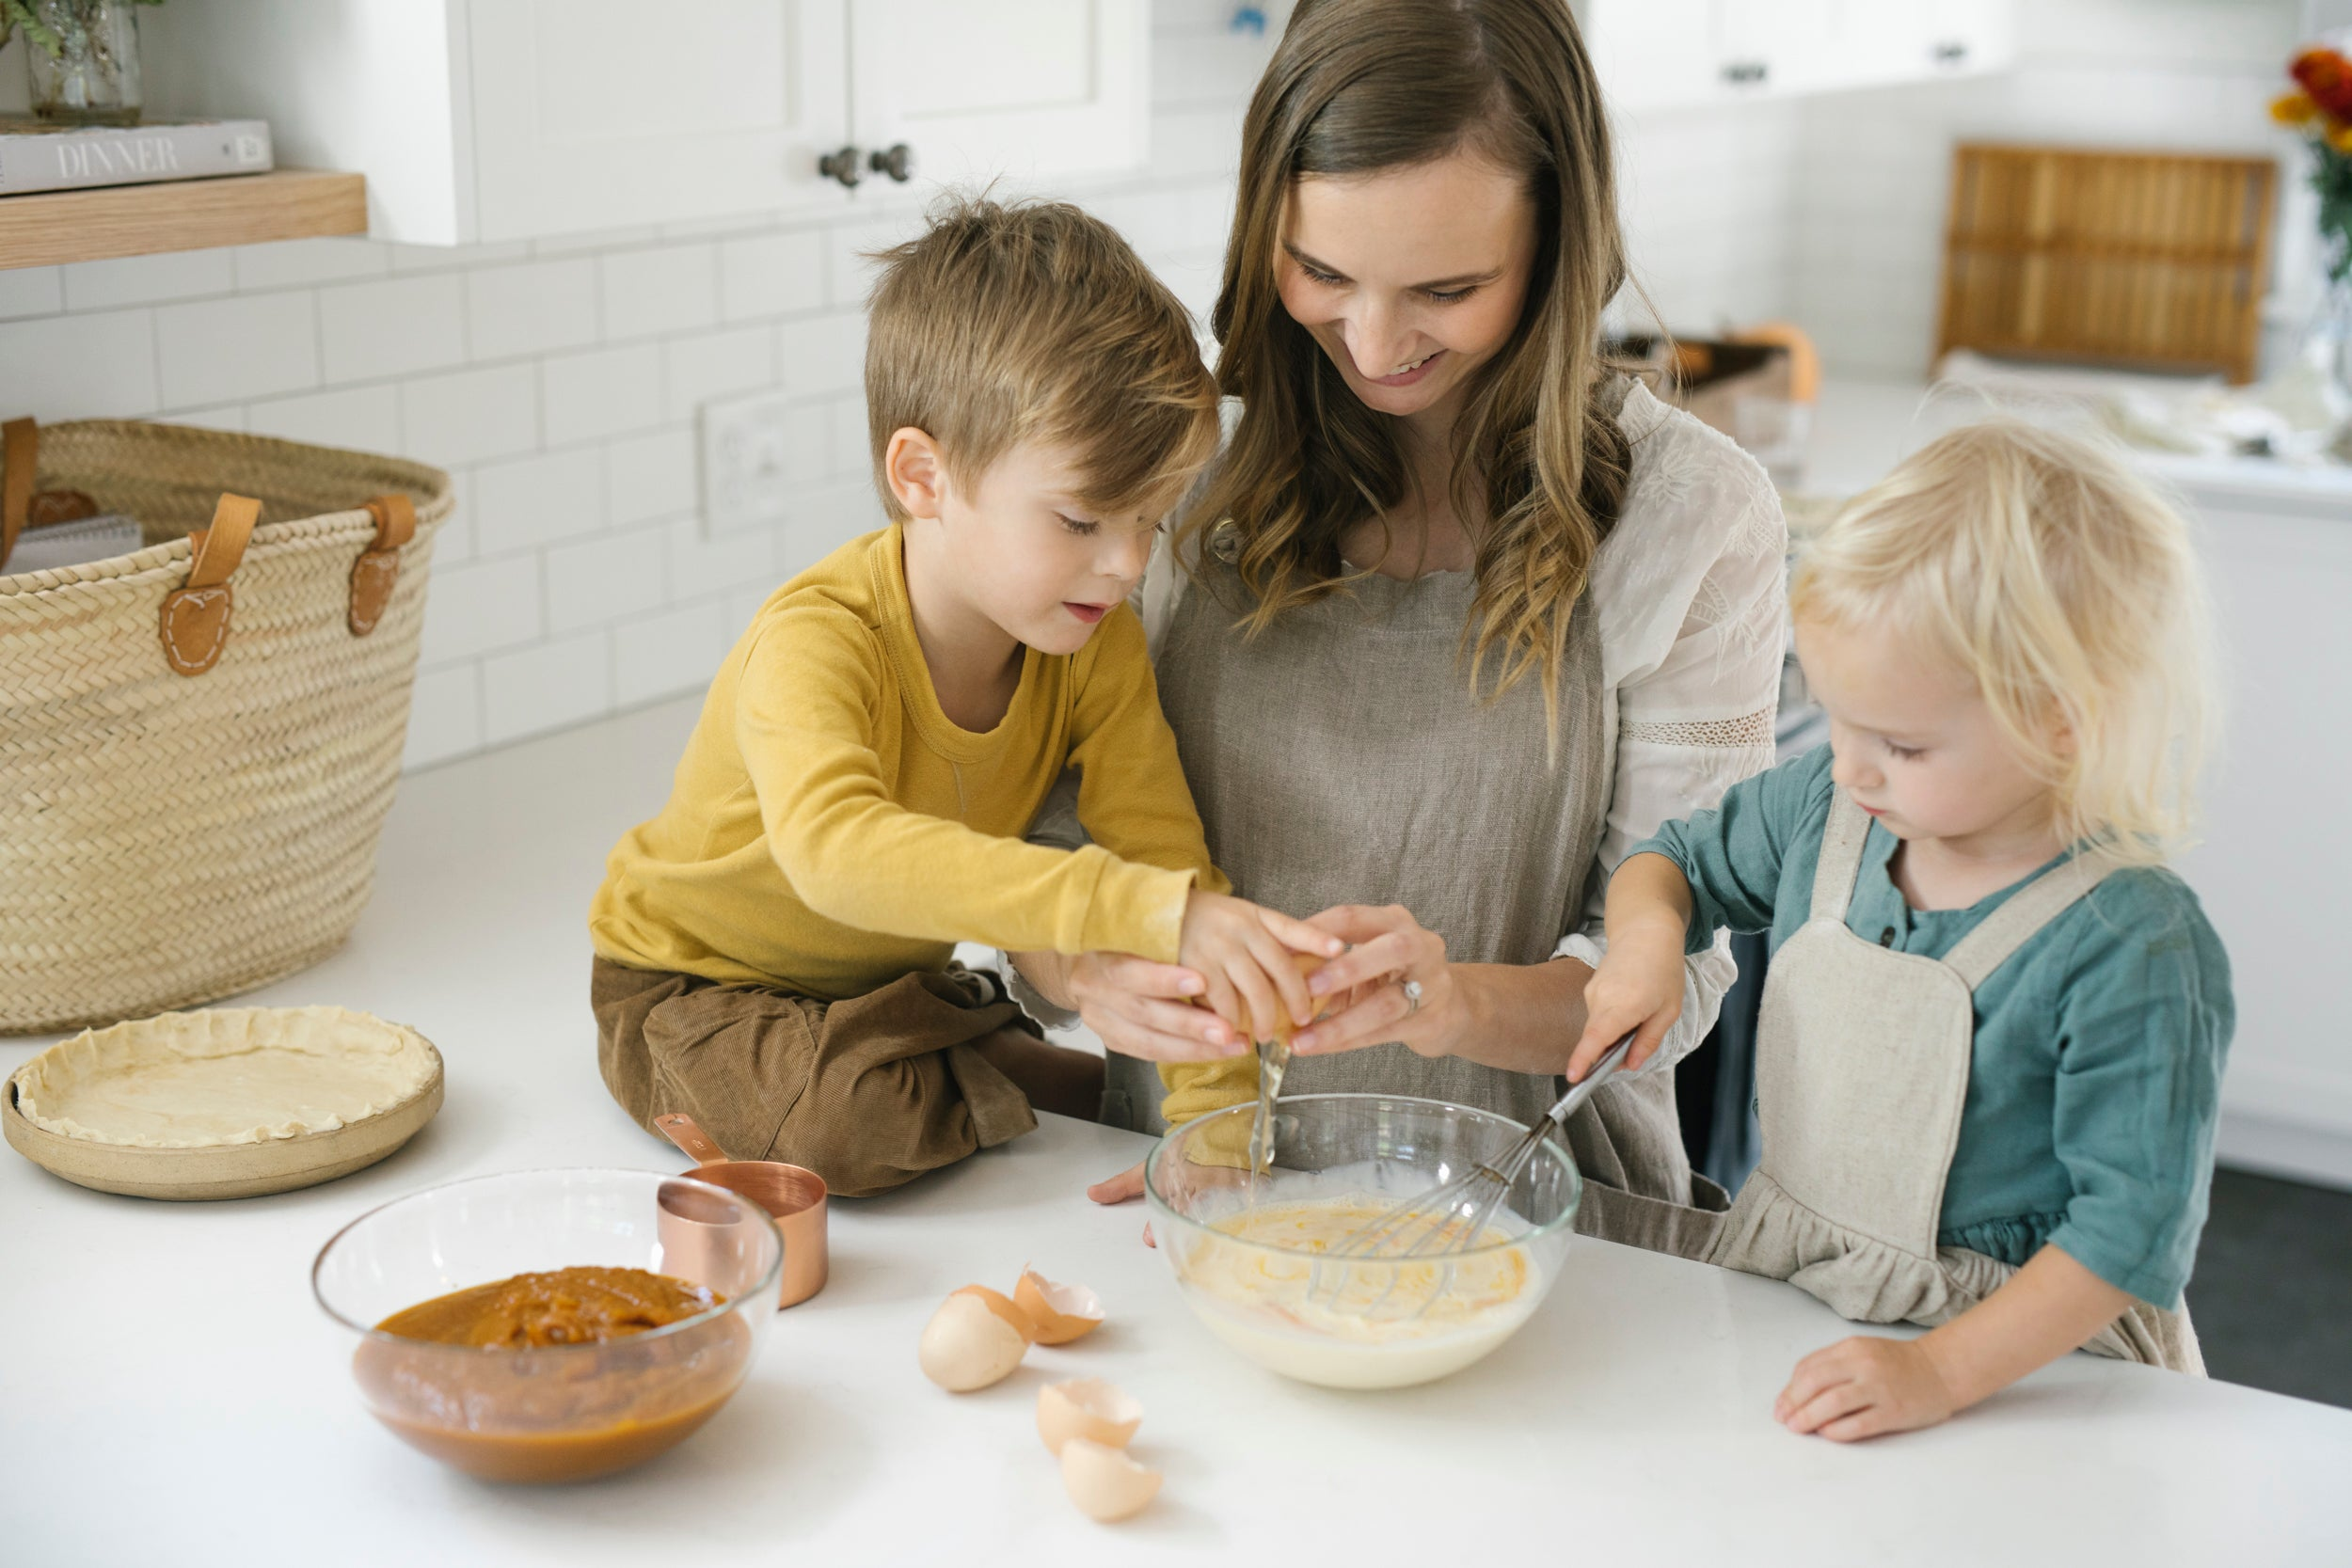 Use Abeego beeswax food wrap to reduce mess when baking with kids